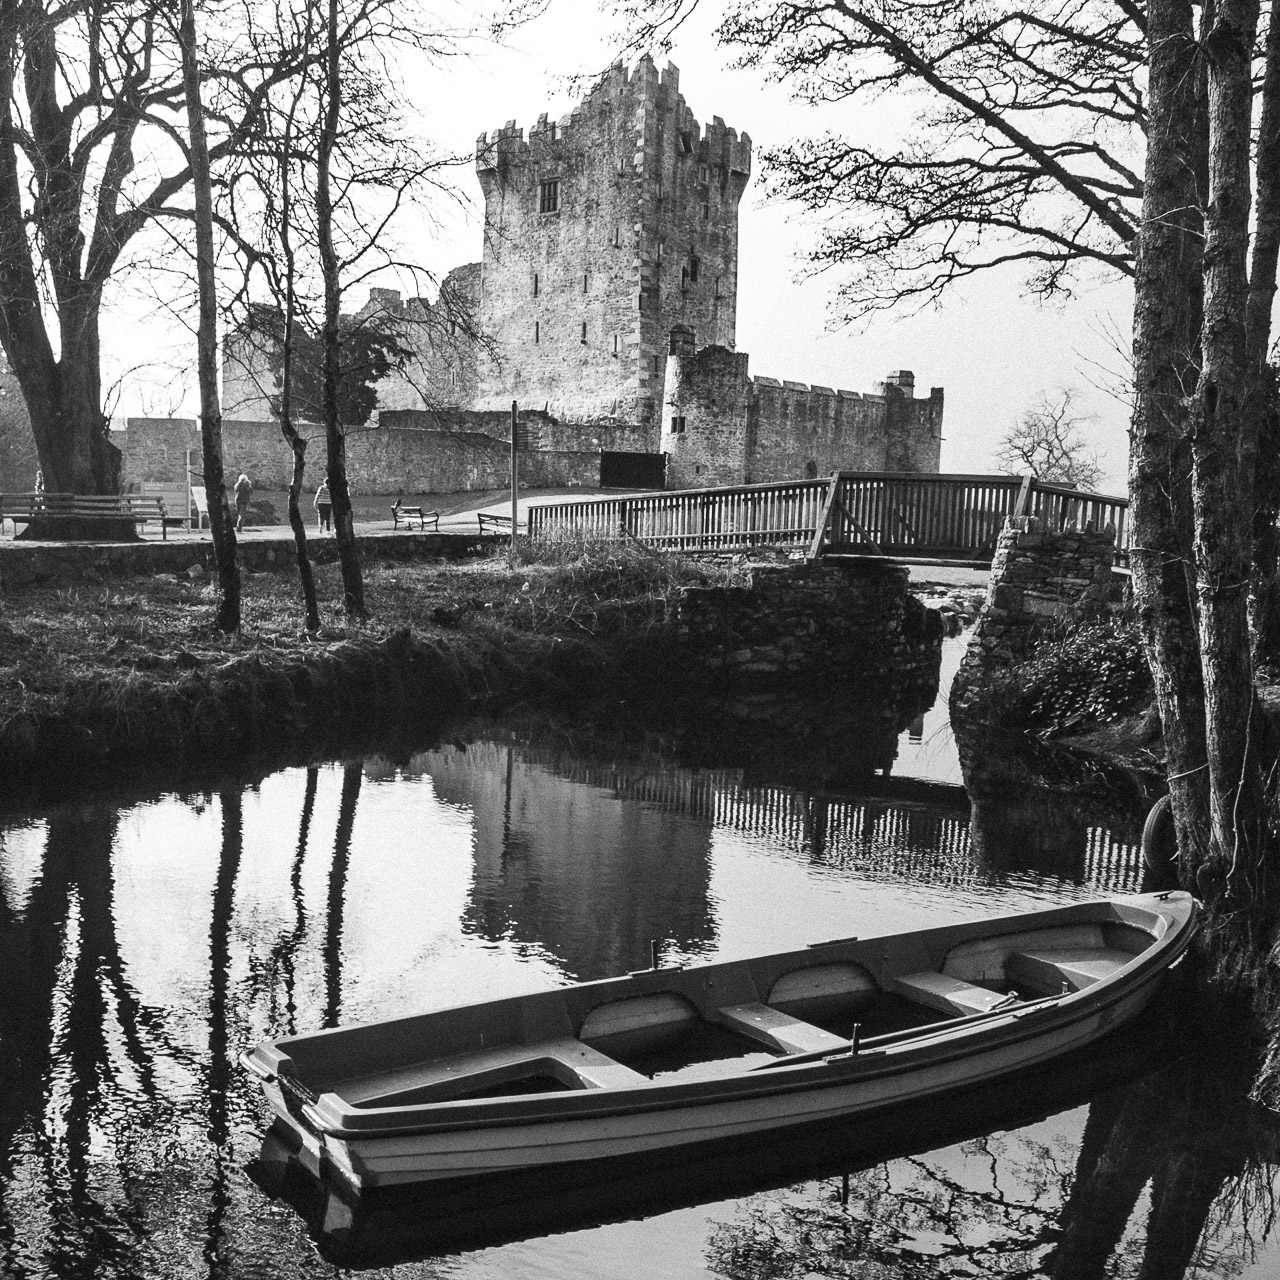 Ross Castle and the Boat